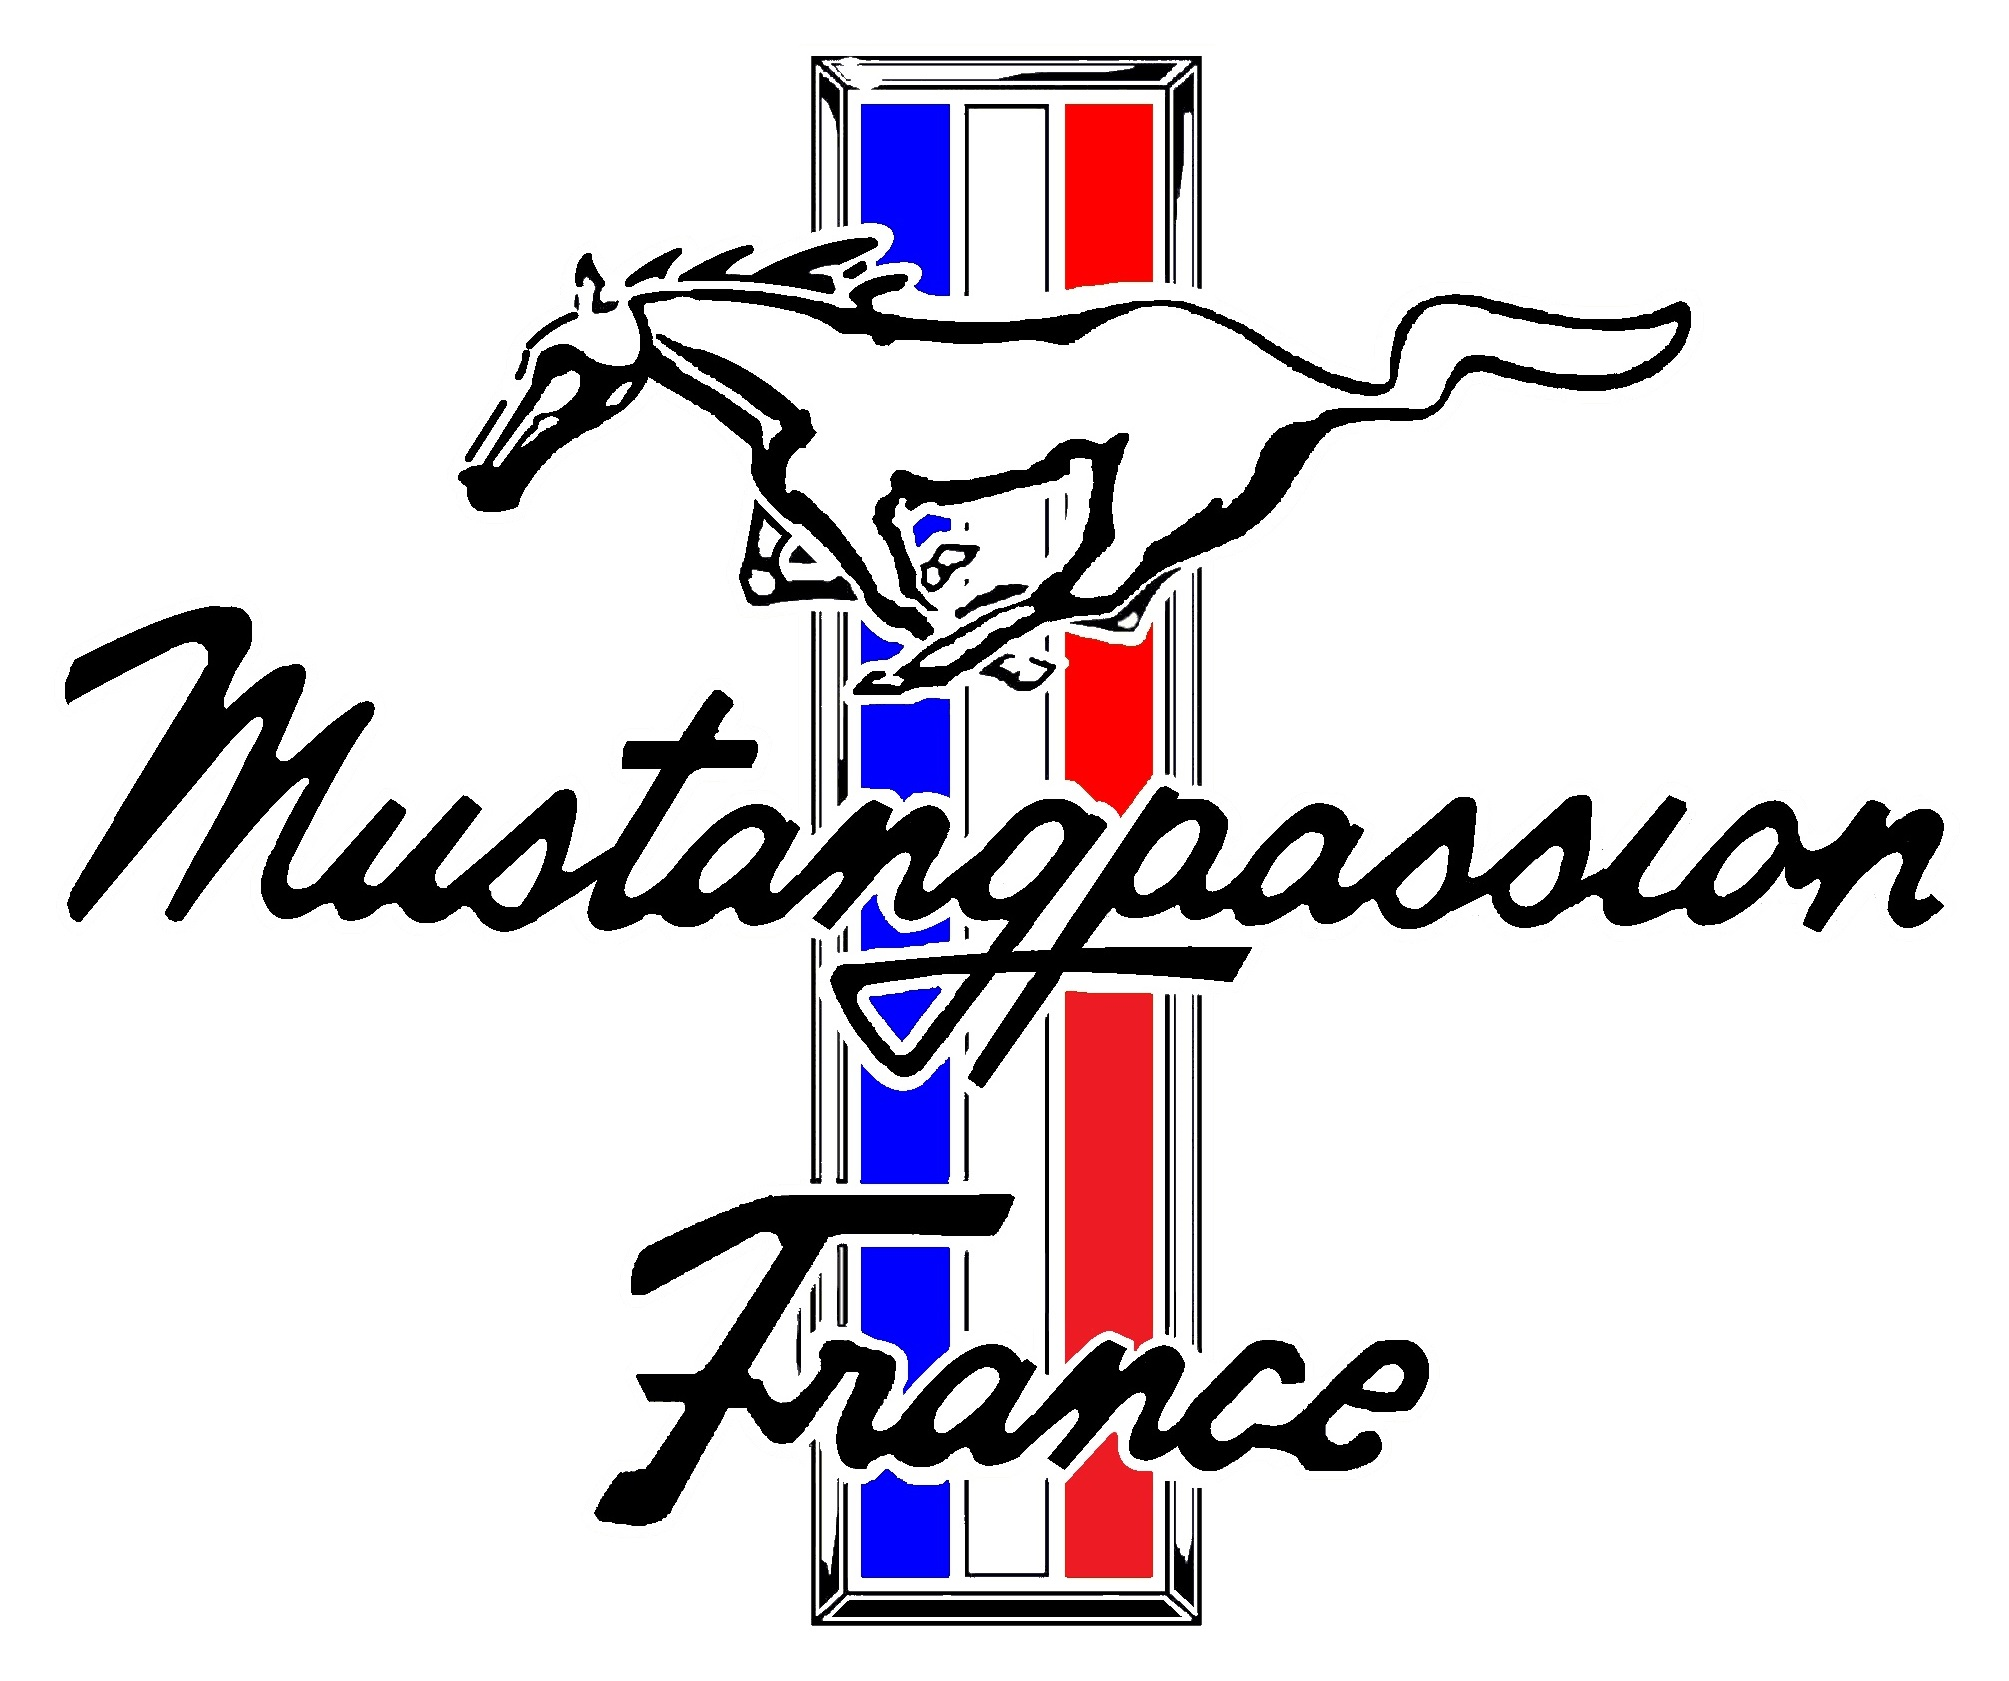 Mustangpassion France Club Logo